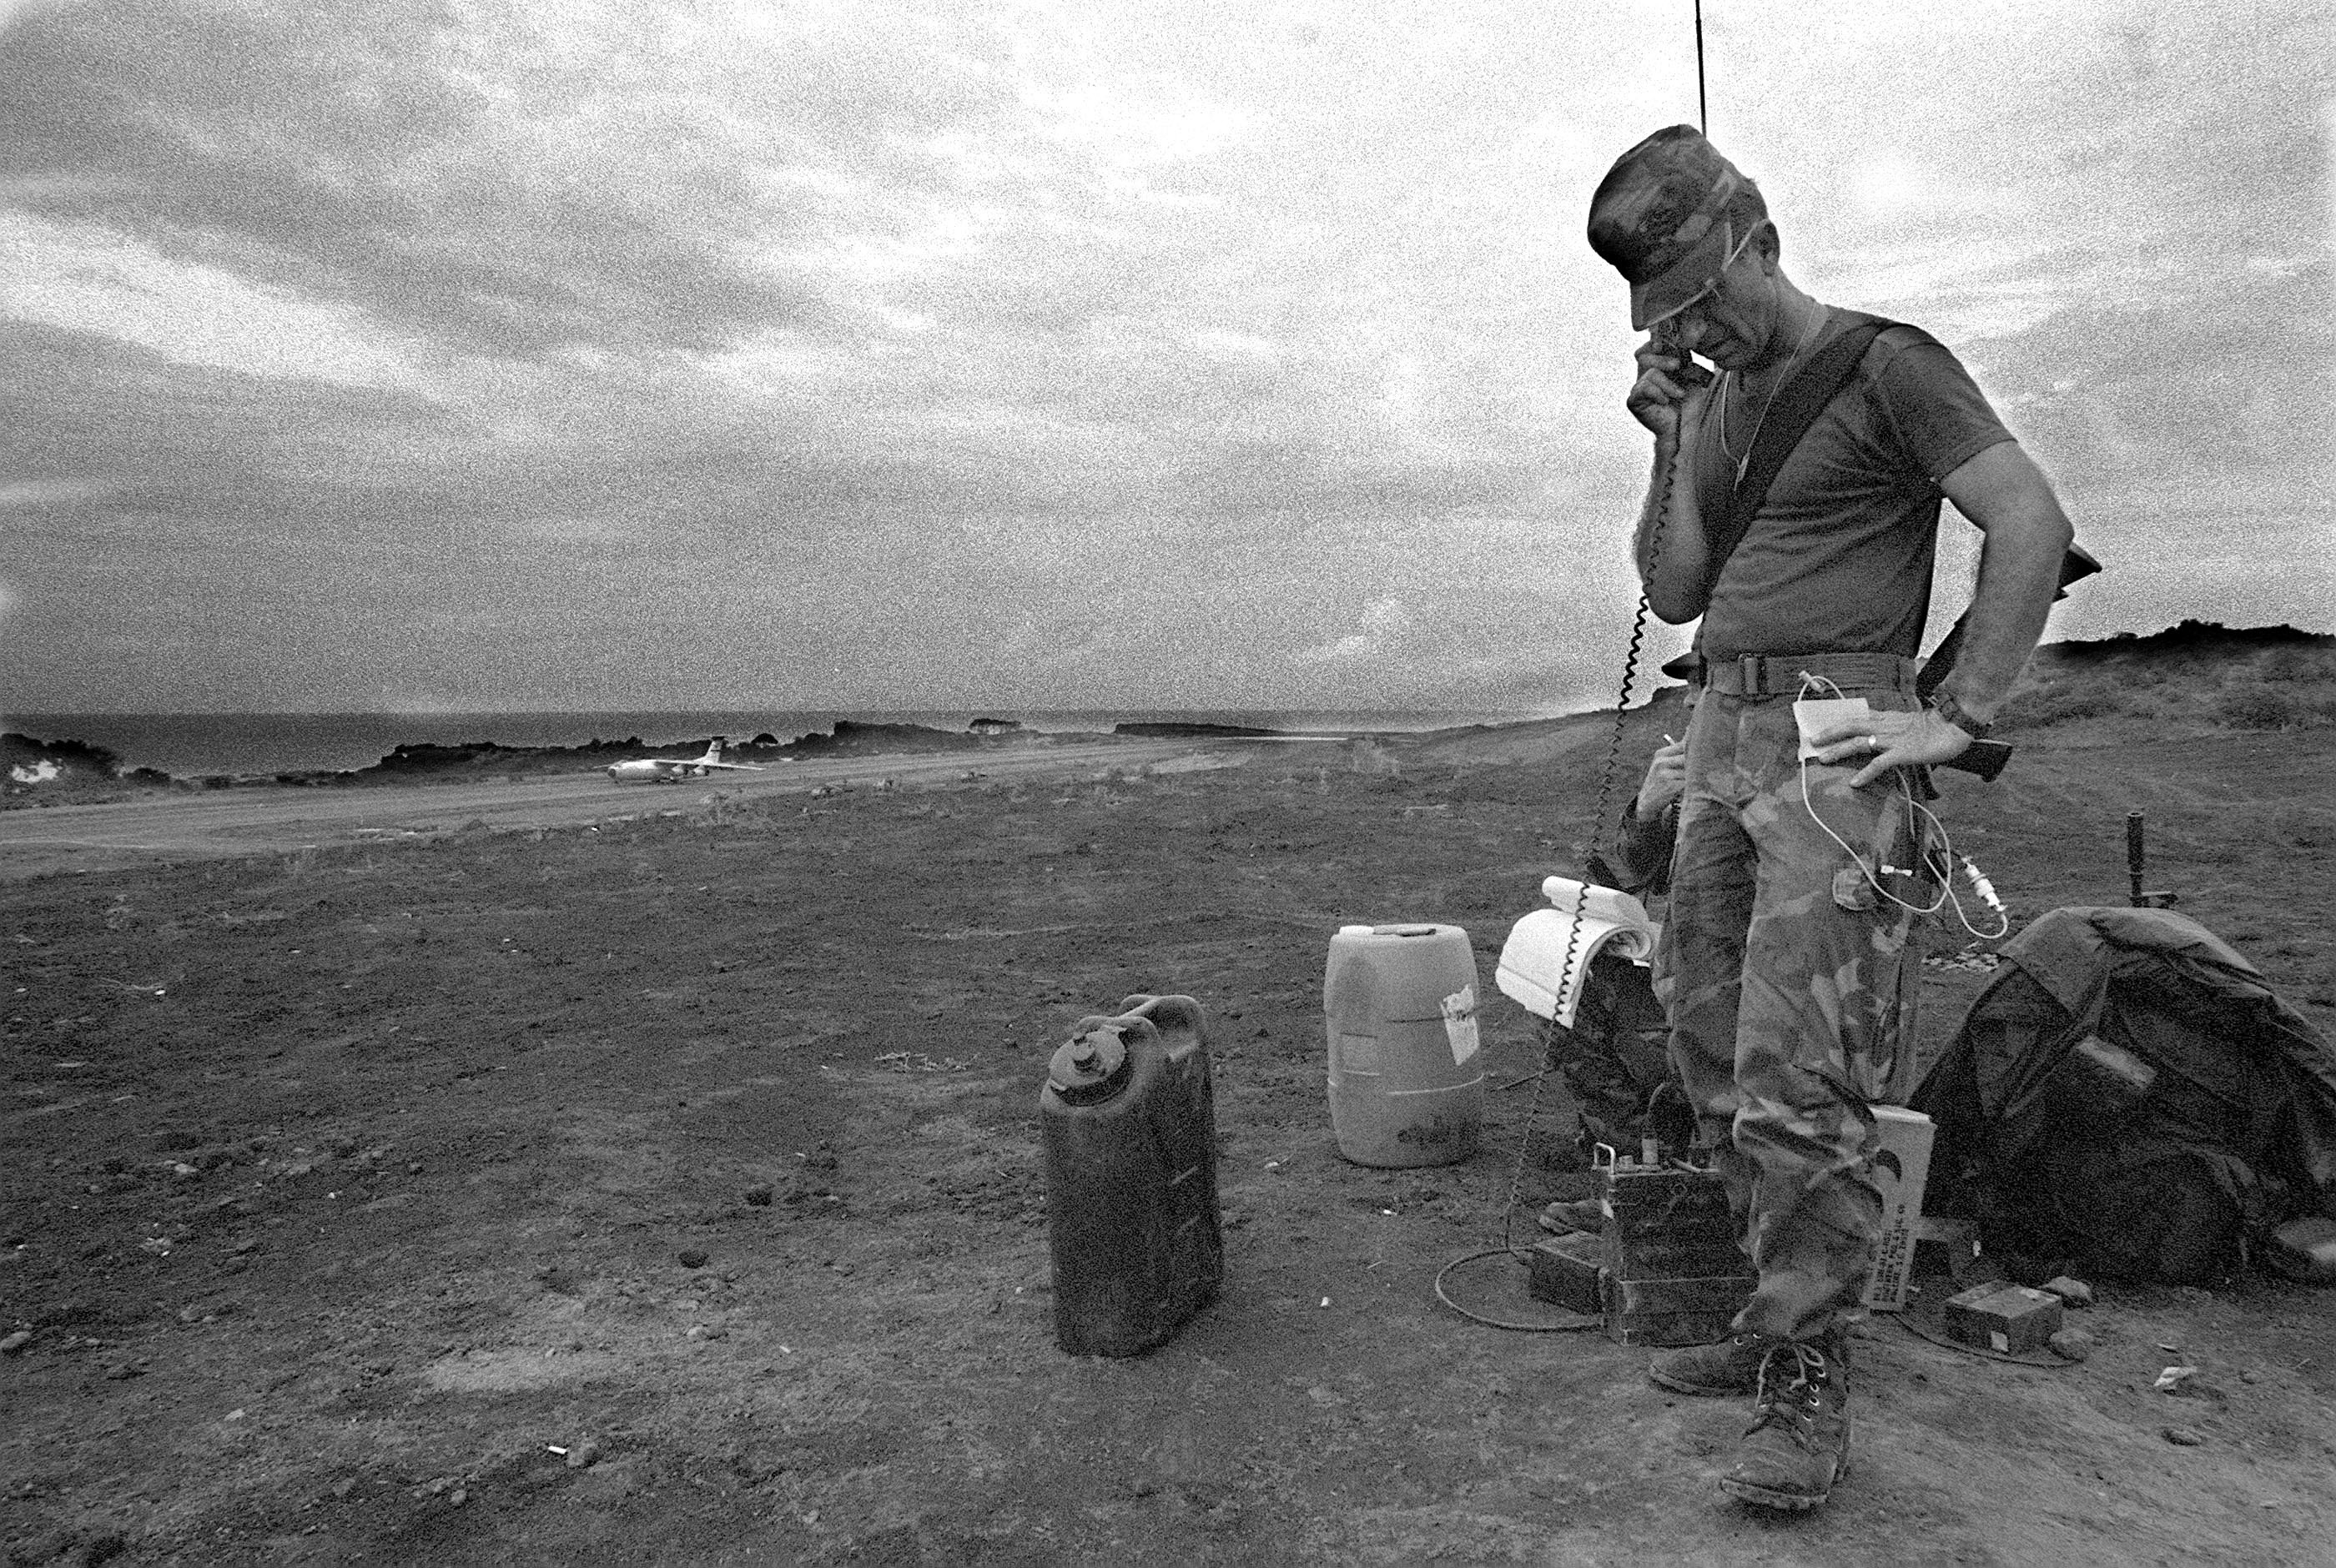 A US serviceman talks on a portable radio near the Point Salines Airfield during the multiservice, multinational Operation URGENT FURY